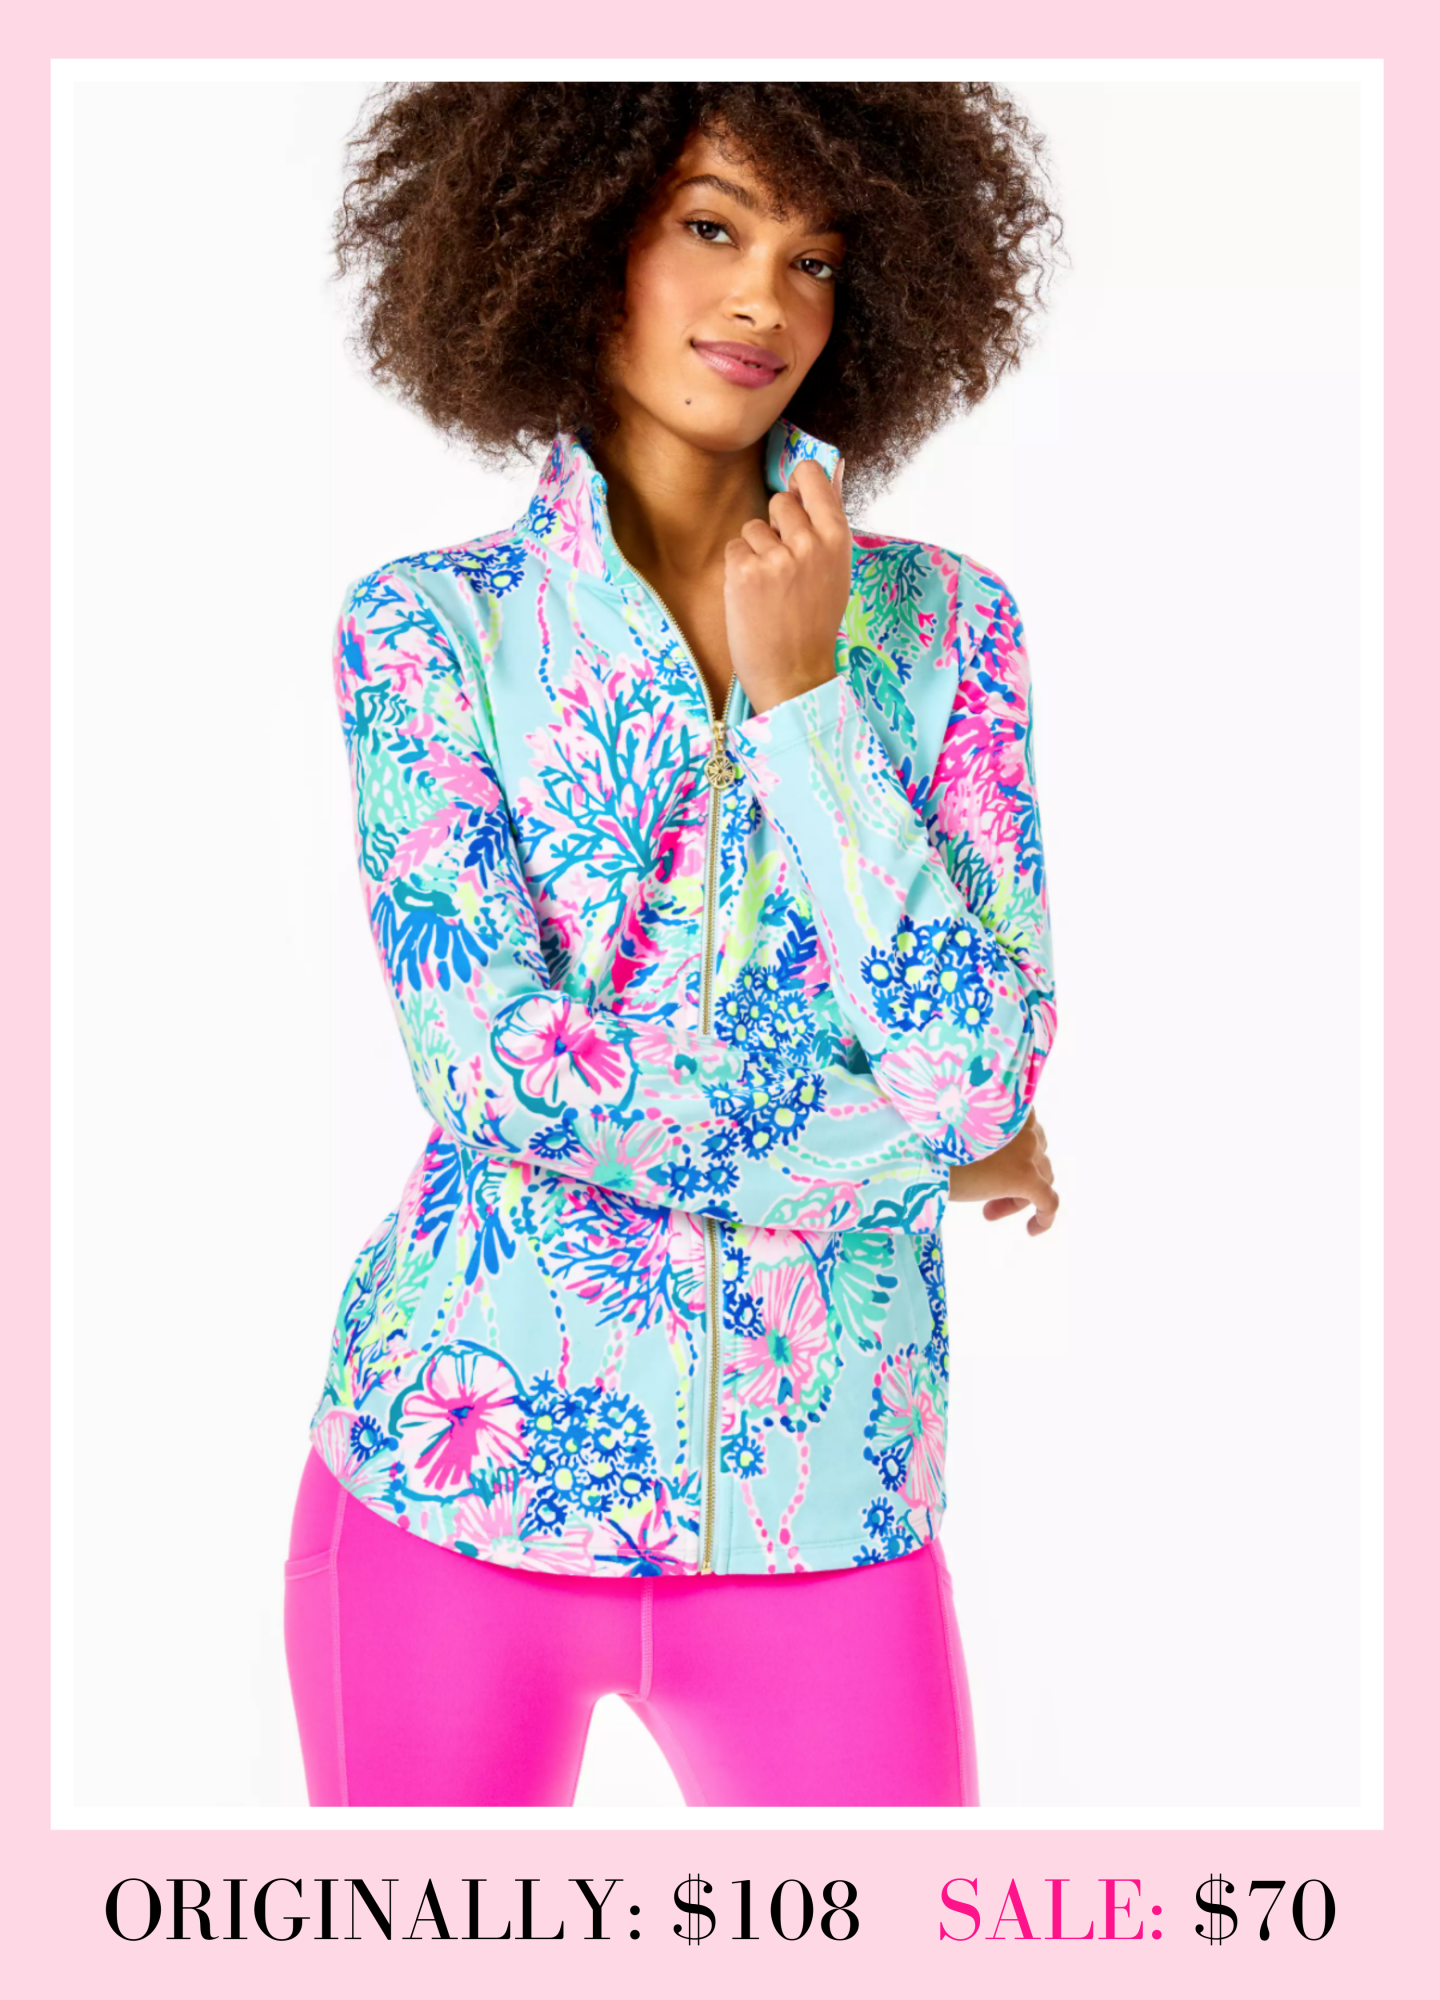 Lilly Pulitzer After Party Sale January 2021